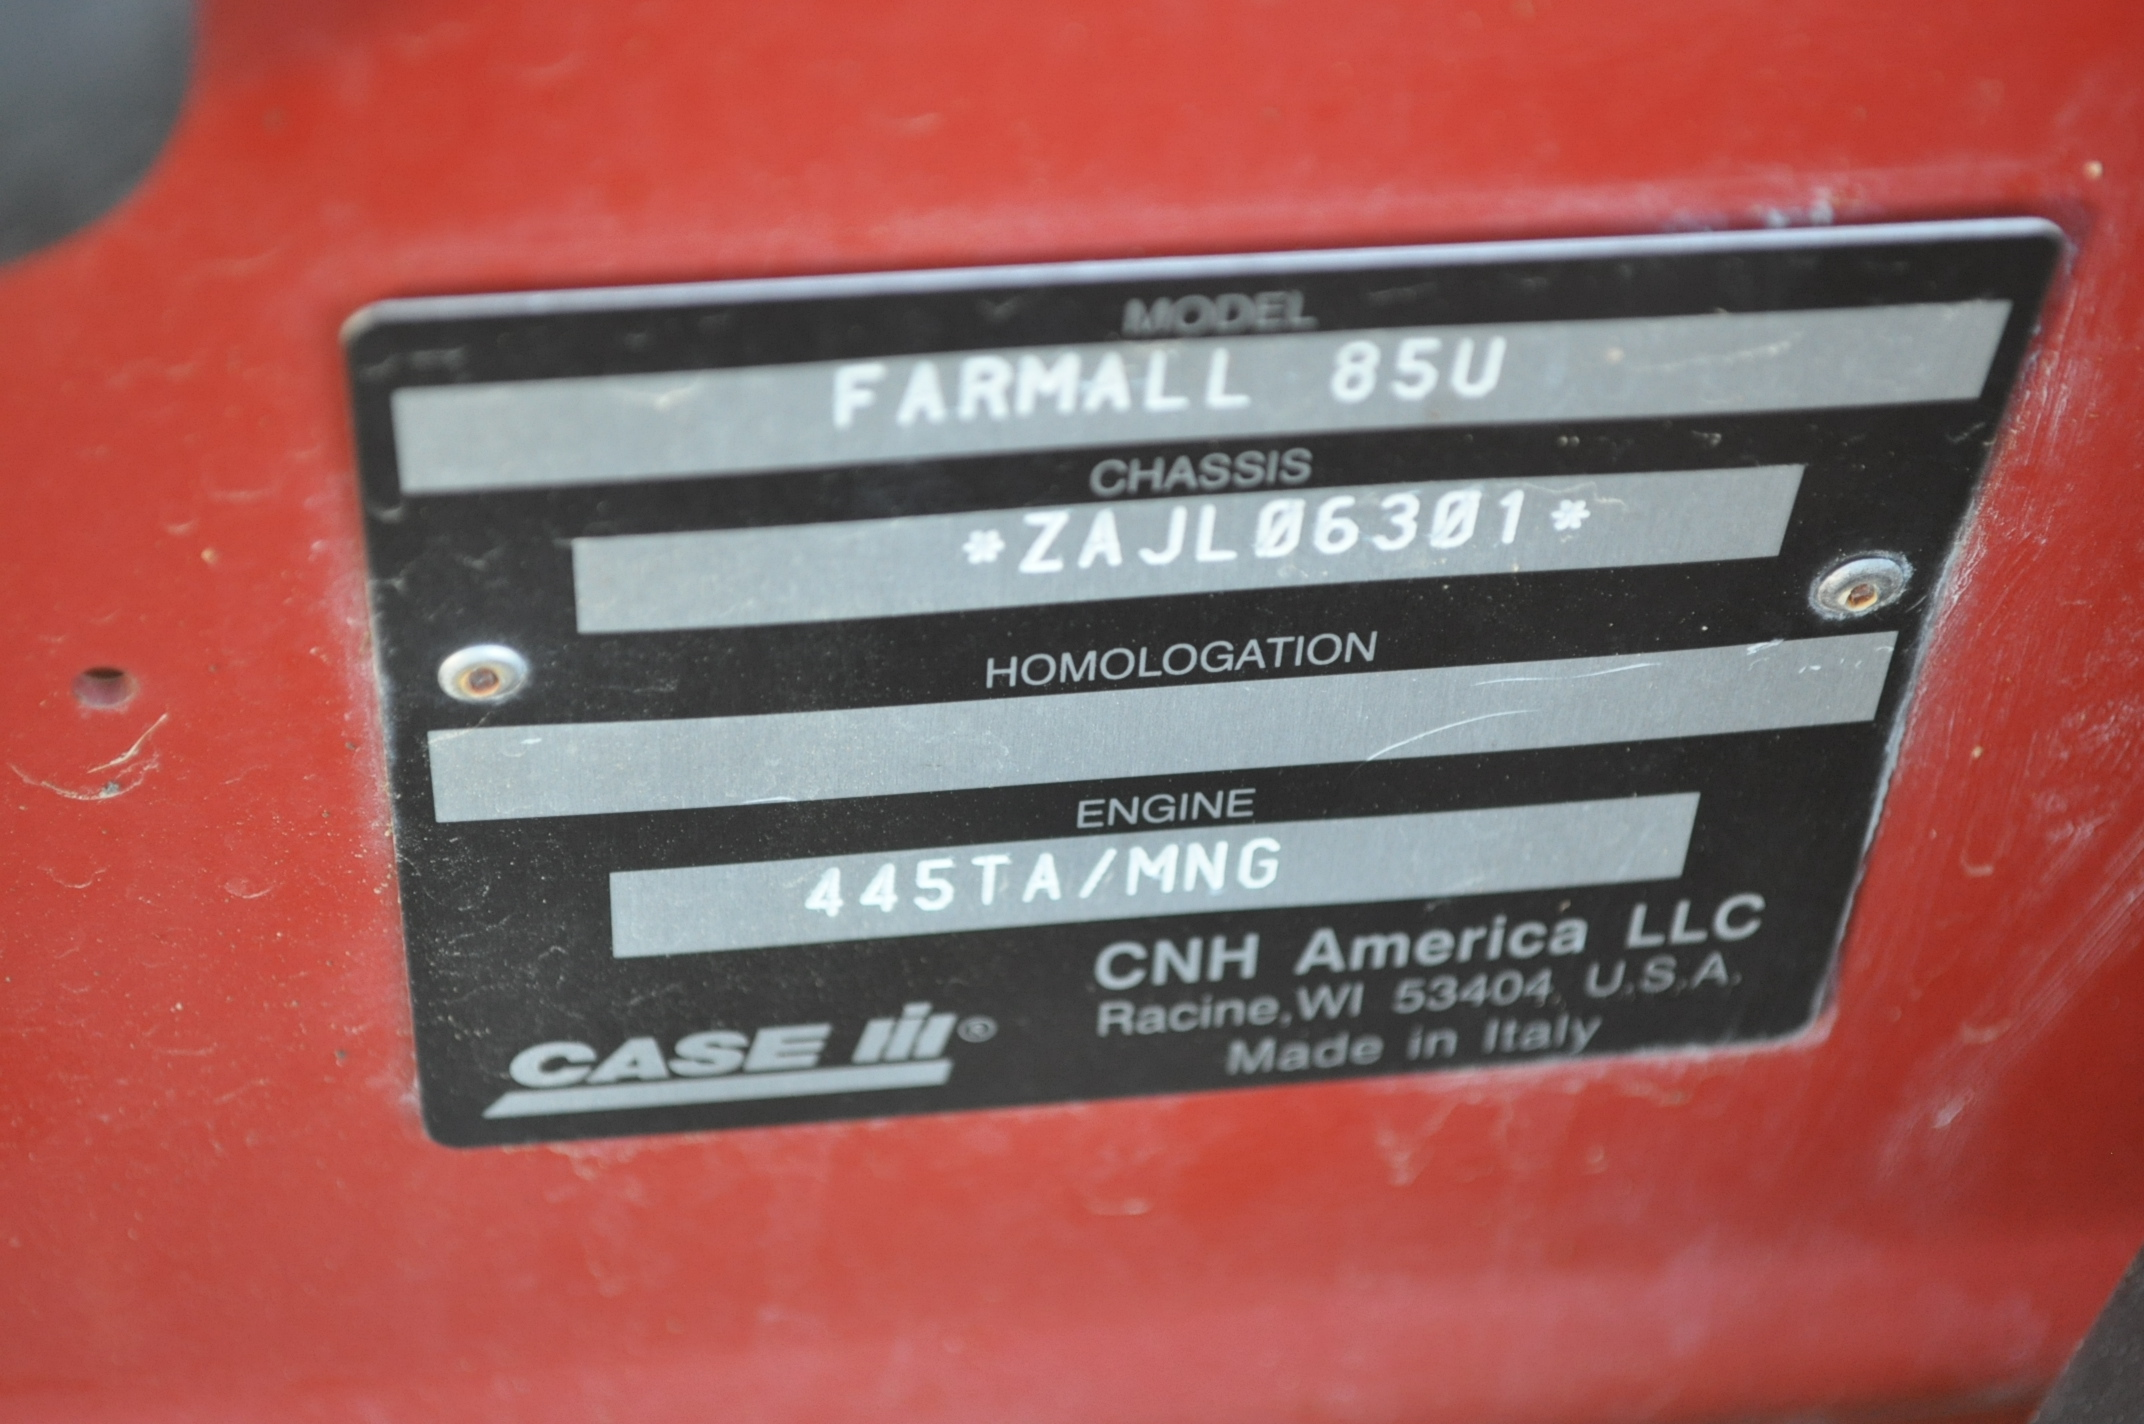 Case IH 85U Farmall MFWD tractor, 18.4R30 rear, 12.4R24 front, open station, mechanical shuttle - Image 16 of 16